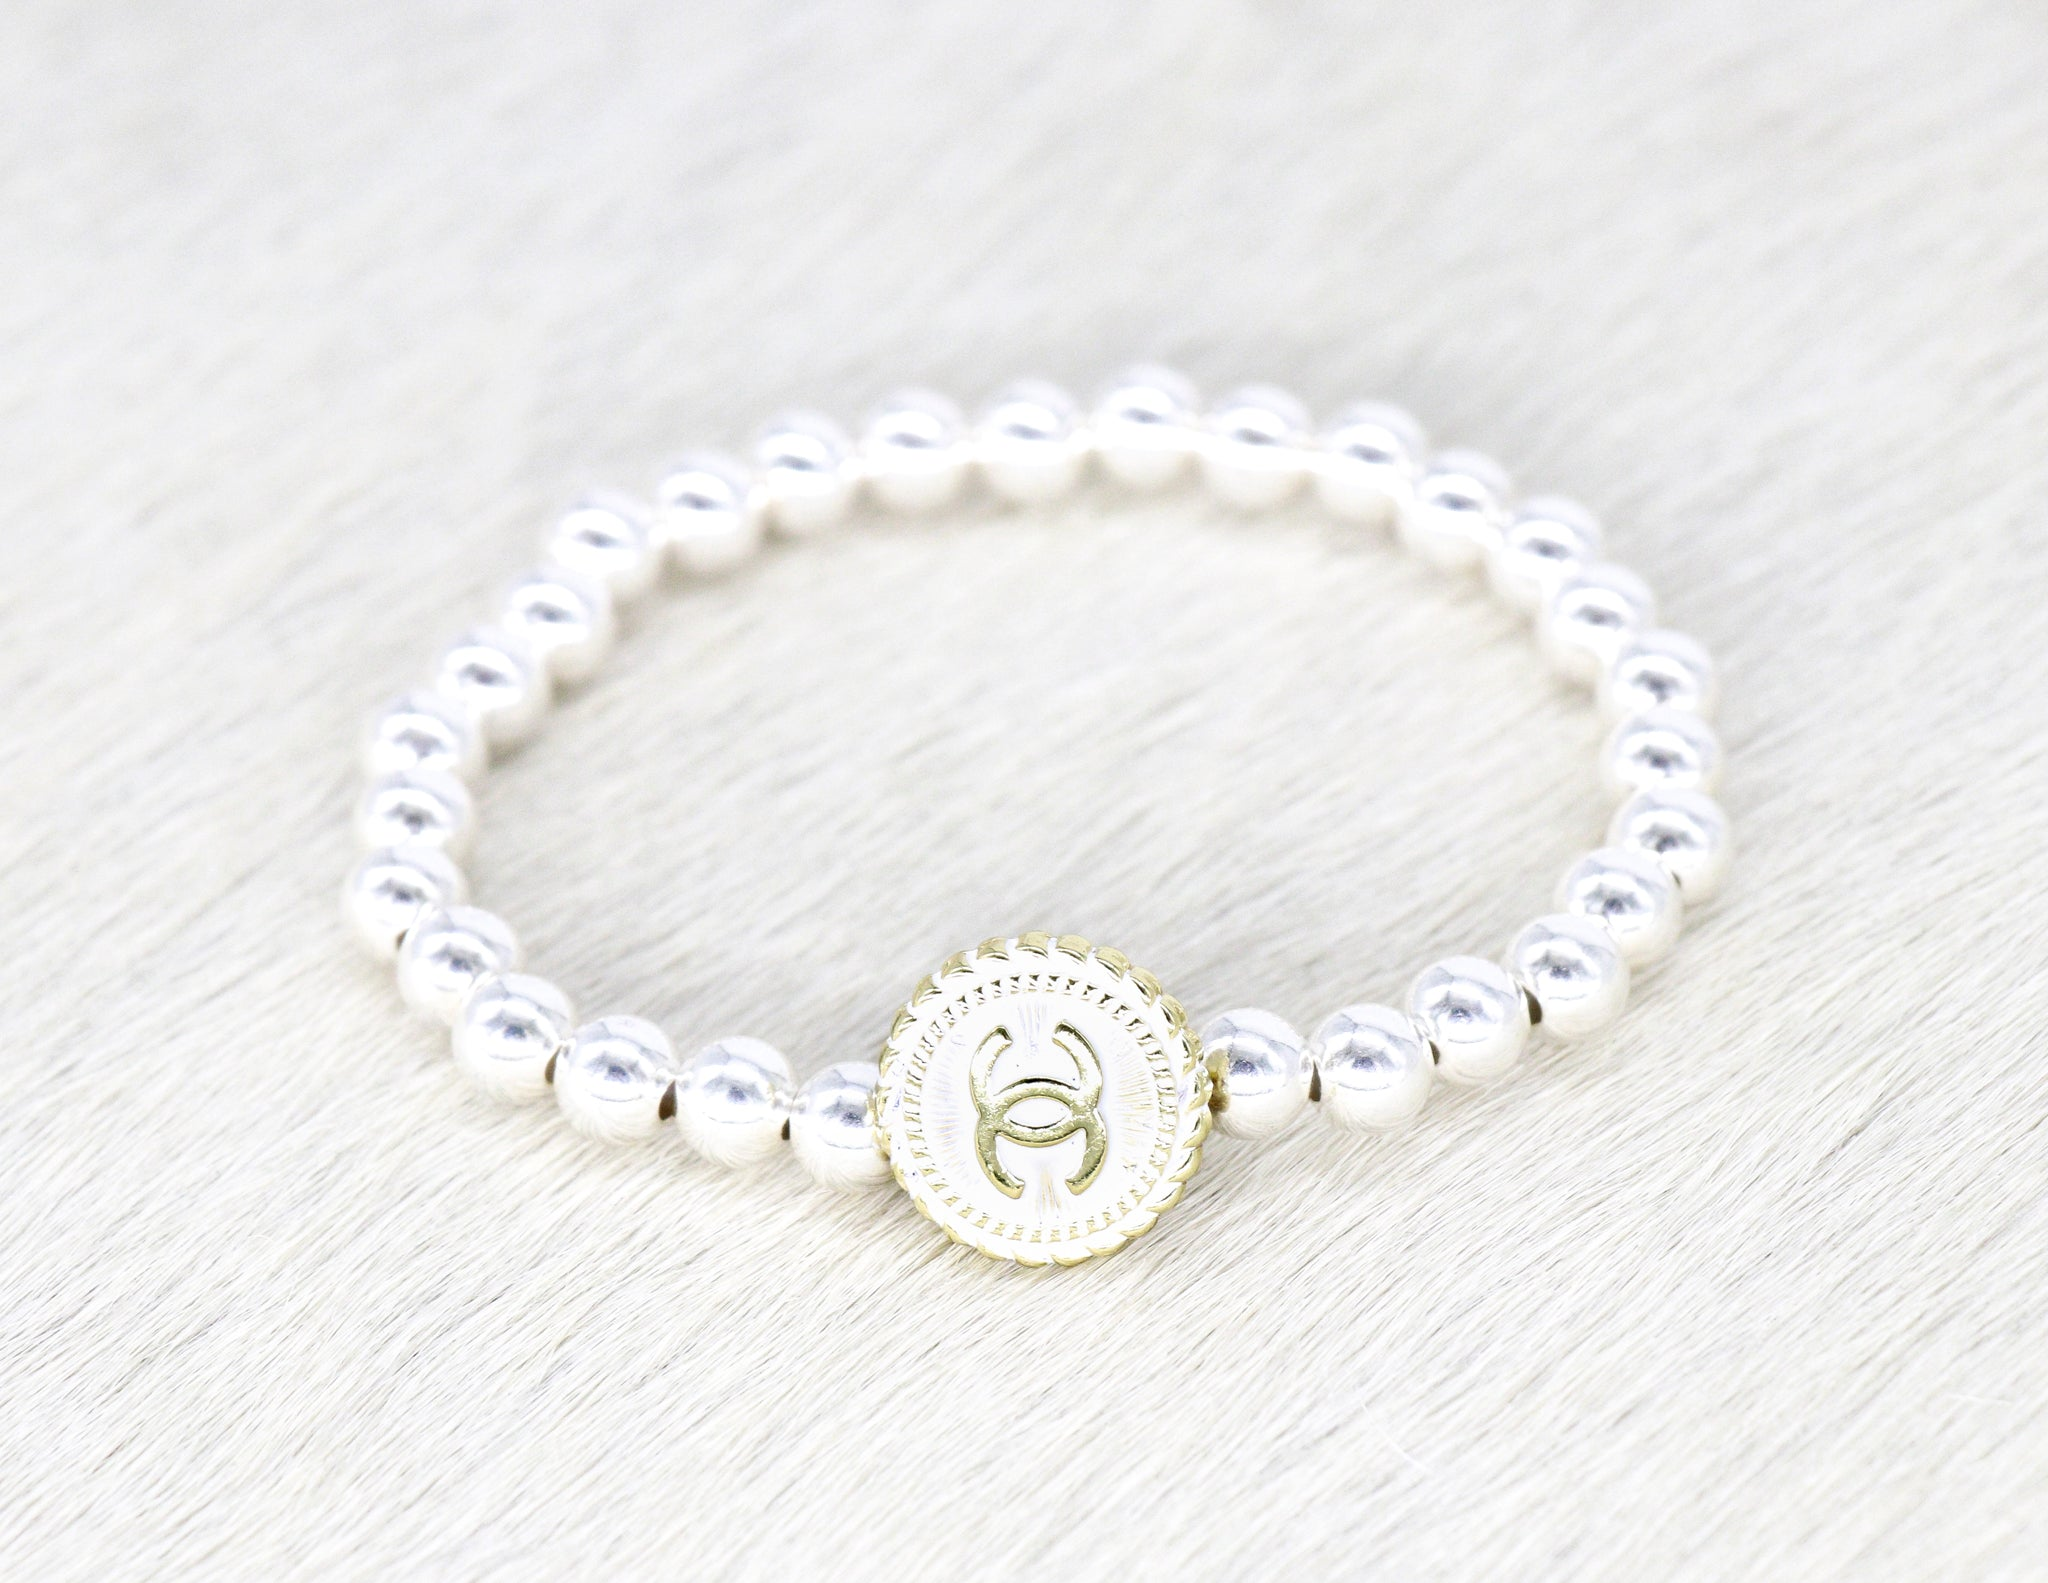 Sterling silver beads with a repurposed designer white and silver button bracelet